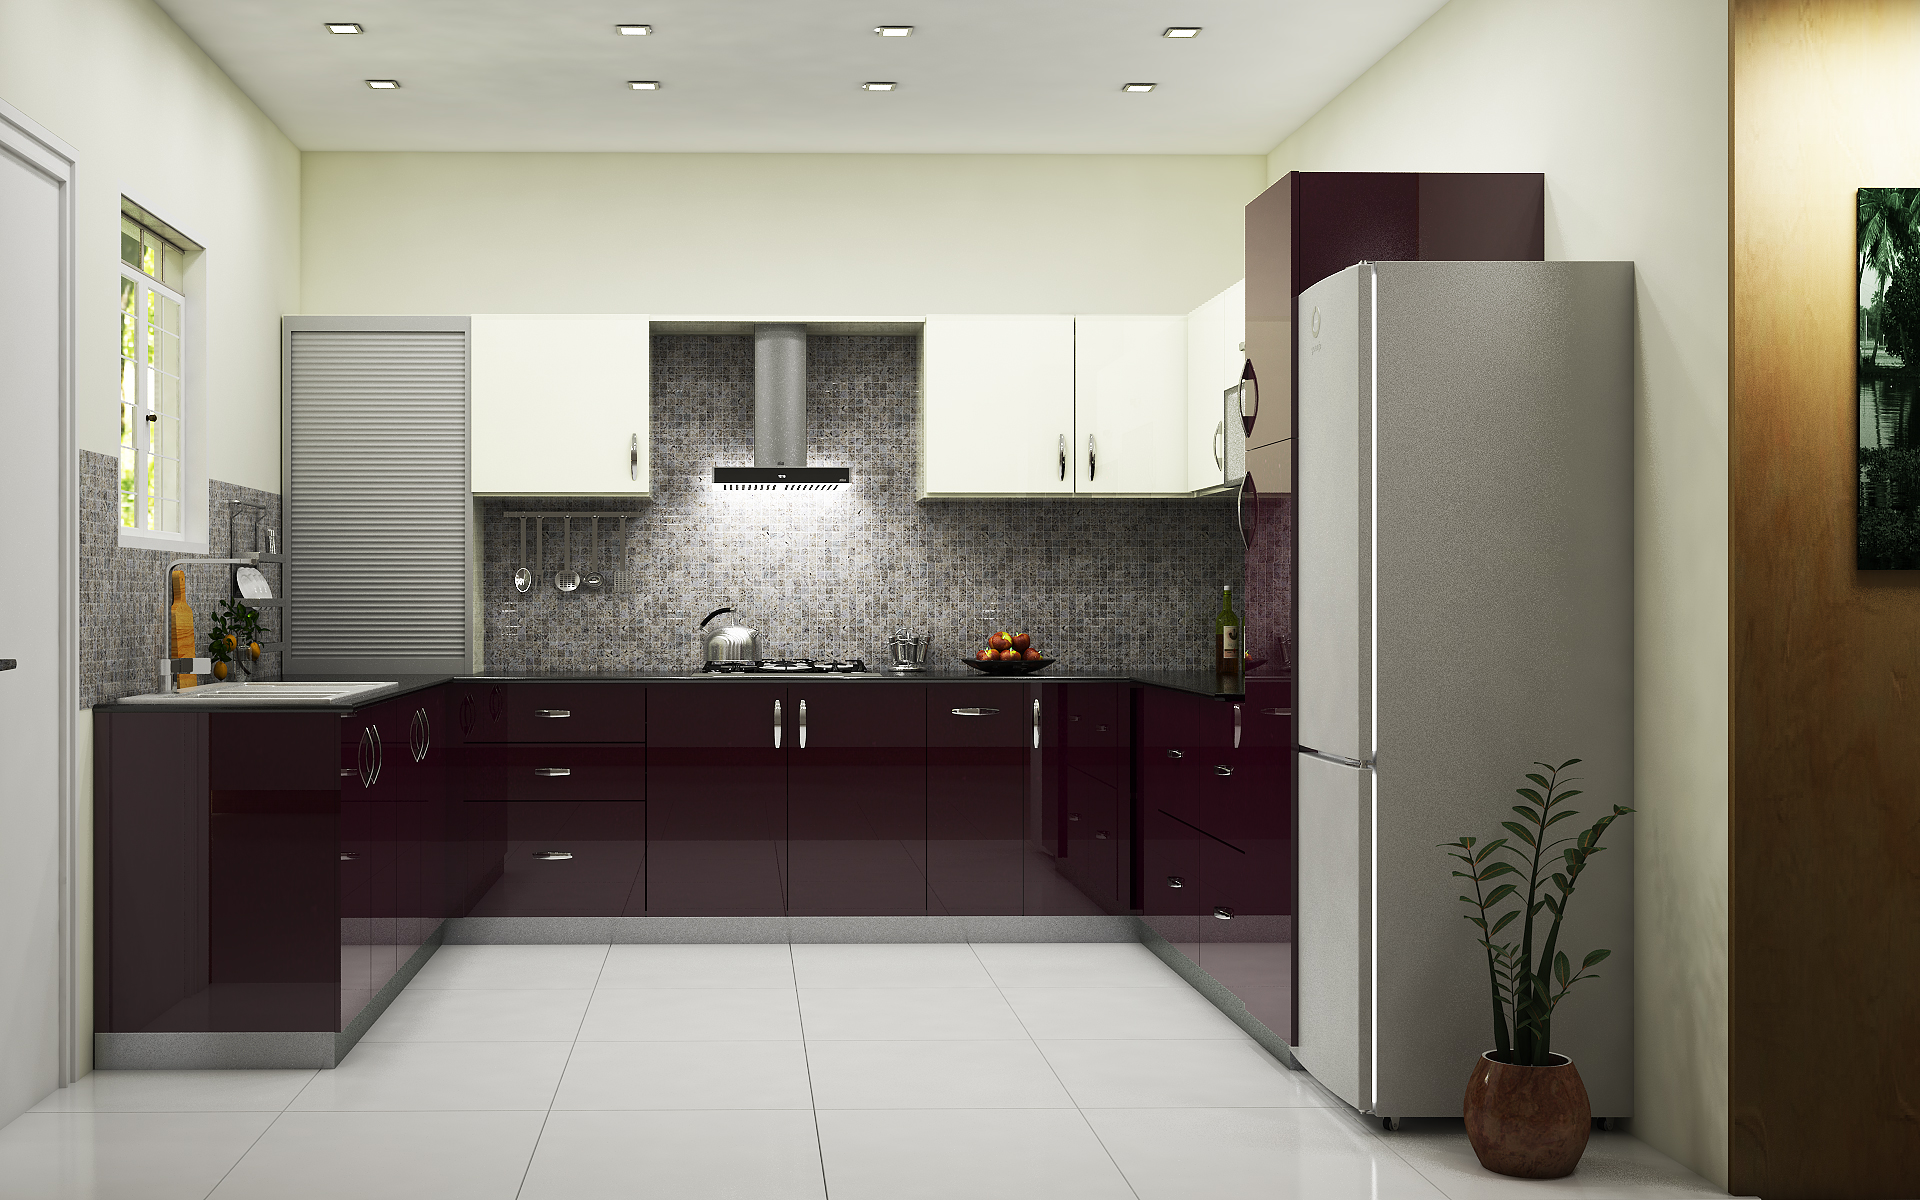 New indian kitchen design - Condor Minimalist U Shaped Kitchen